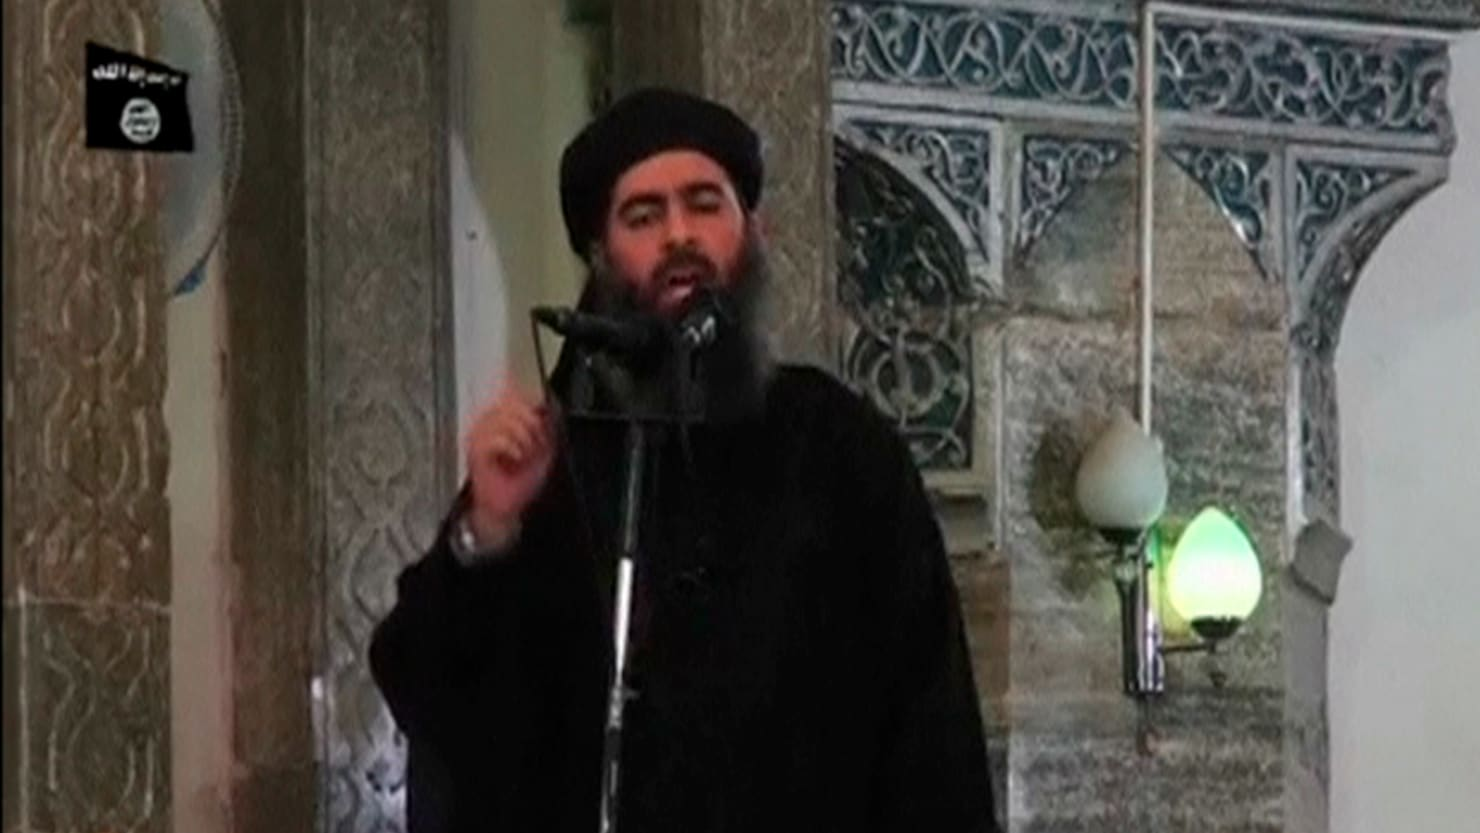 ISIS Leader Abu Bakr al-Baghdadi 'Releases' First Tape in Over a Year, Says Report